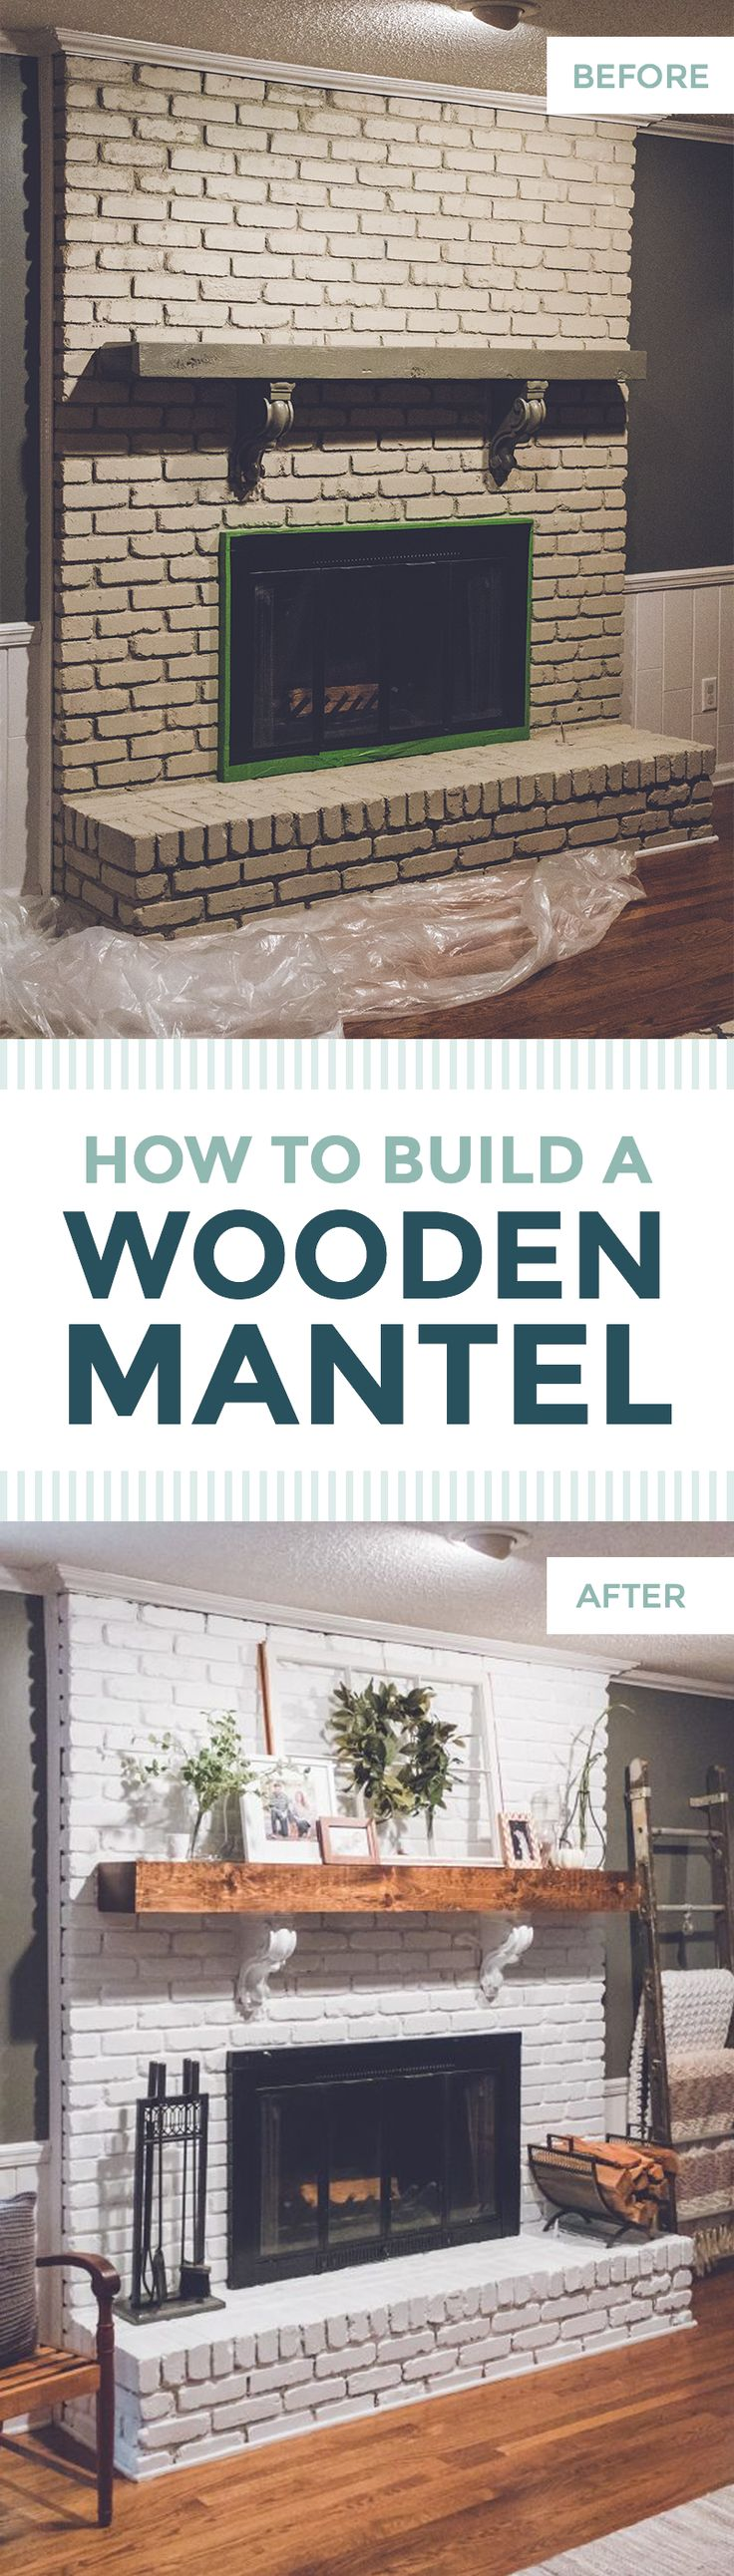 How to Build a Wooden Mantel | Easy, Simple, DIY Faux Wood Beam Mantle | Farmhouse-style white brick fireplace with old window, wreath, corbels, beautiful greenery, and natural wood | Before and After of Wooden Mantel and Brick Fireplace